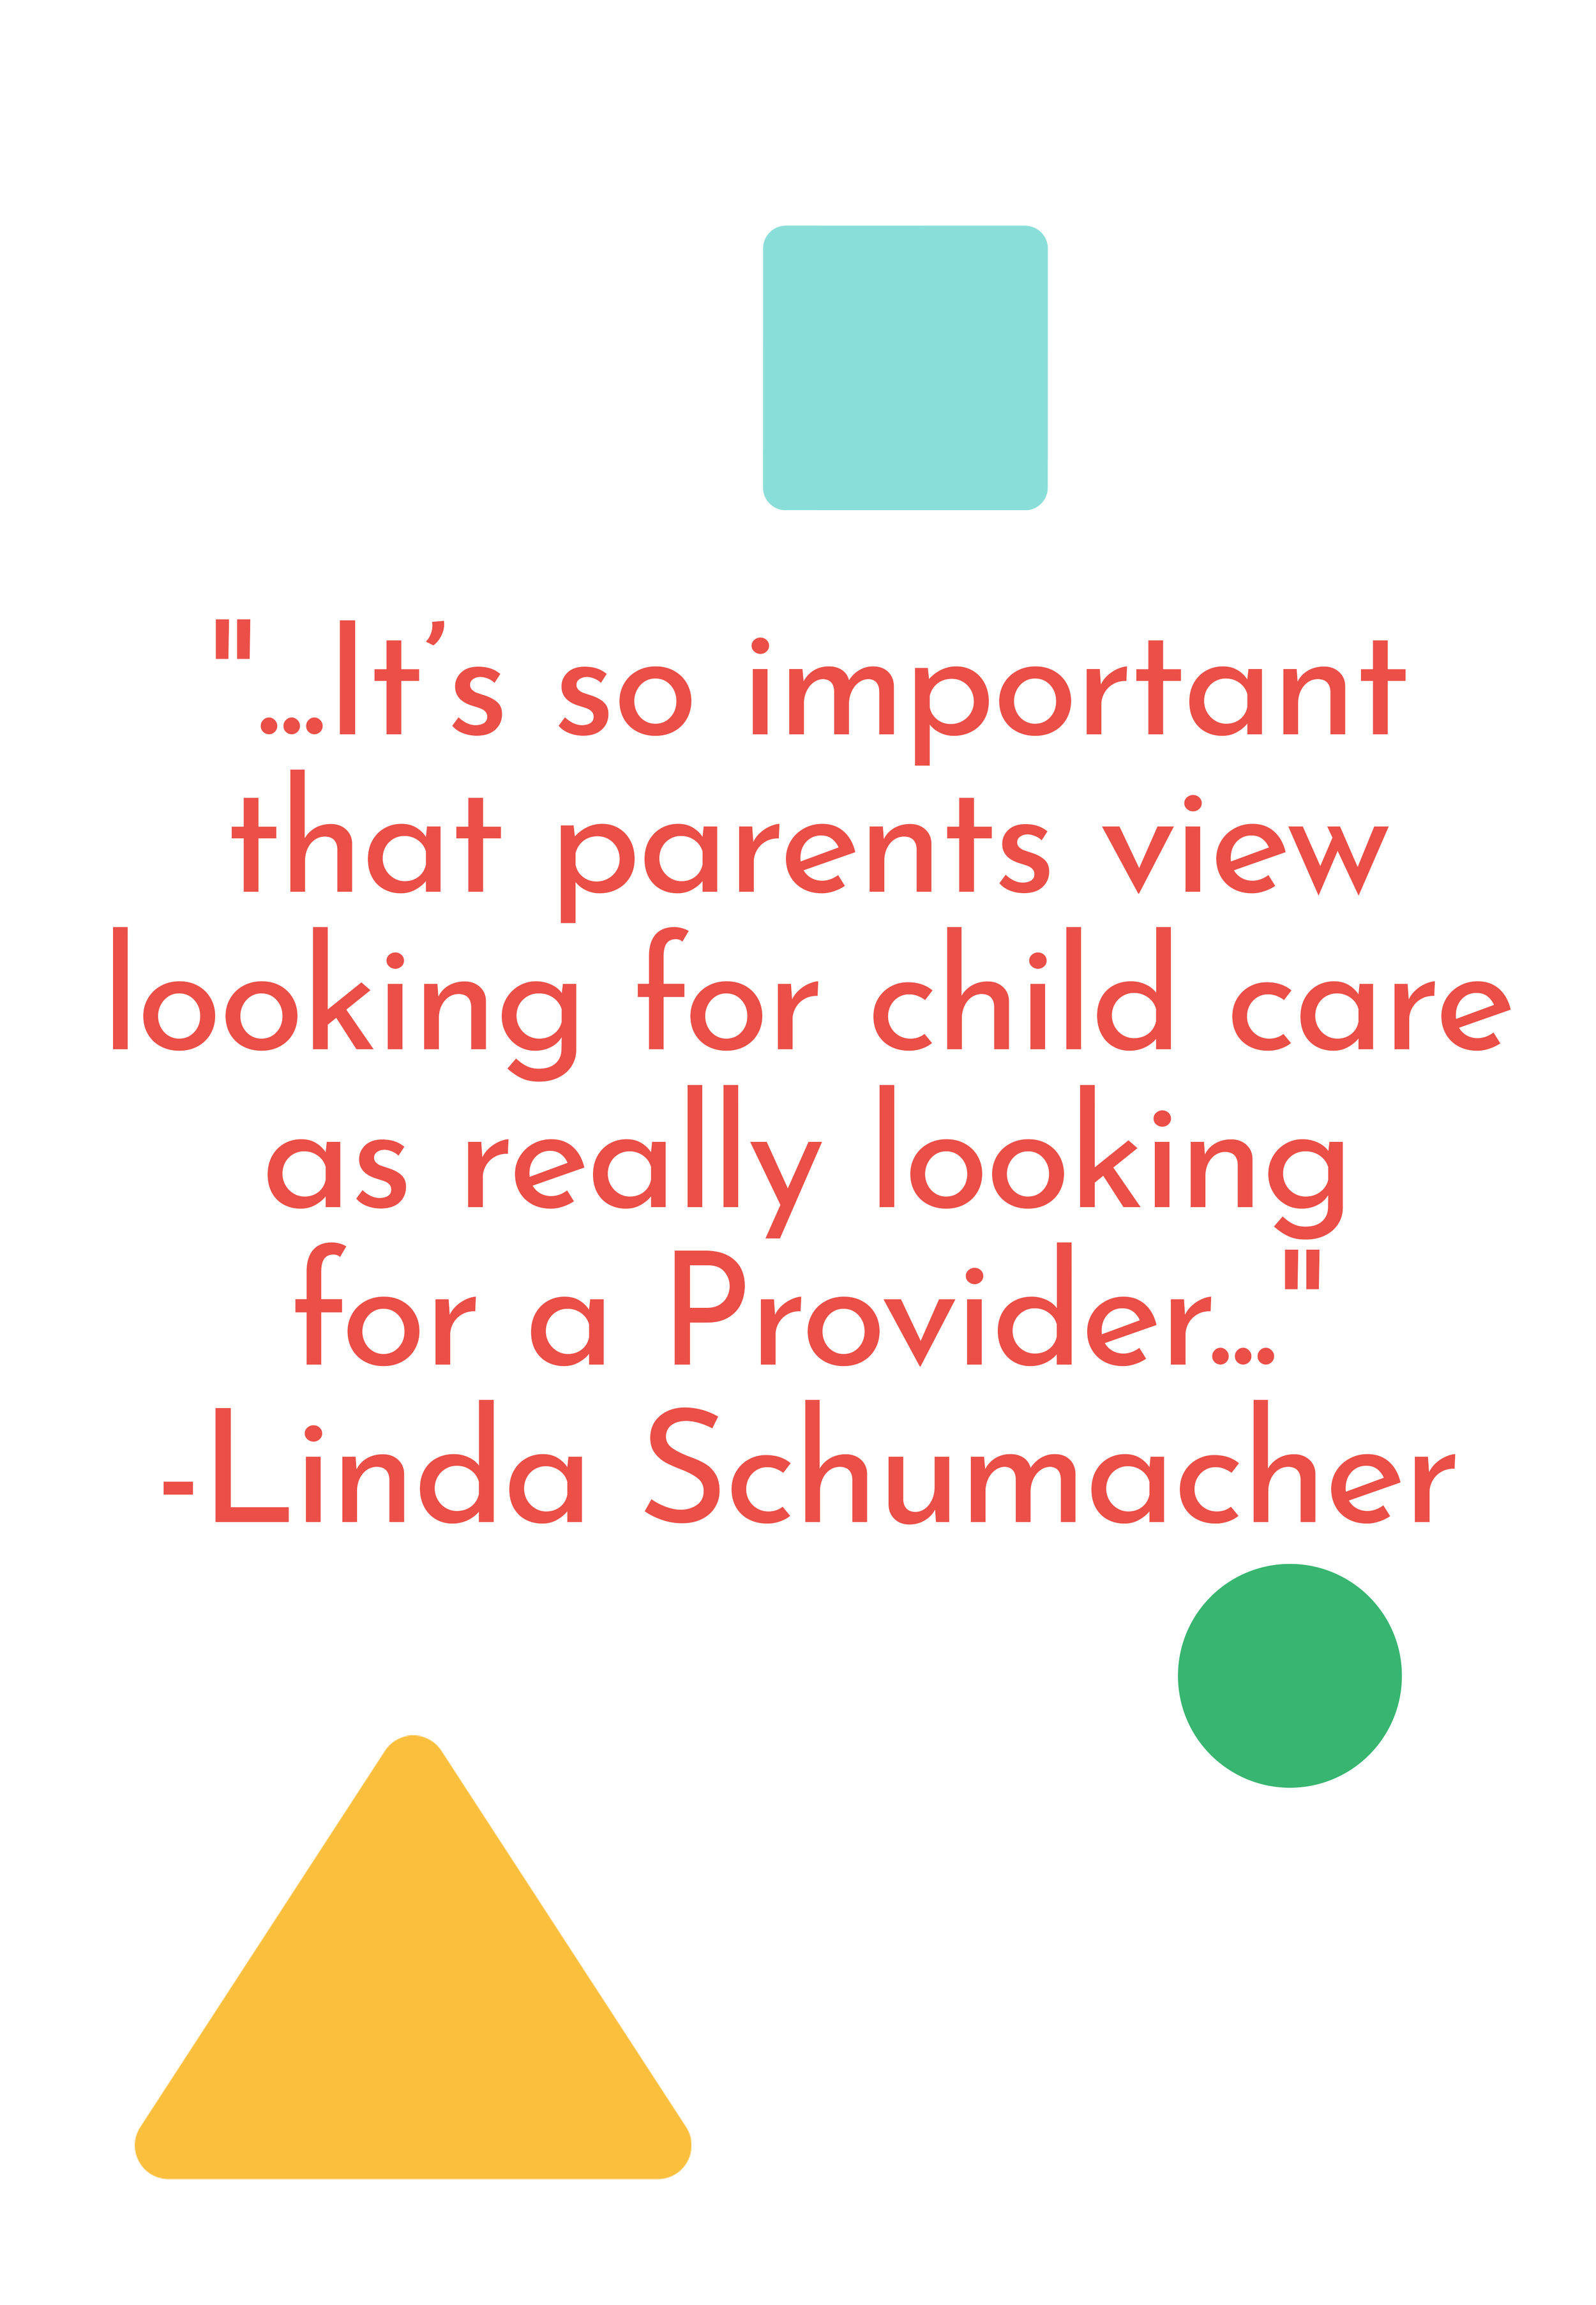 """""""...It's so important that parents view looking for child care as really looking for a Provider..."""" - Linda Schumacher on what questions parents should ask a daycare provider"""